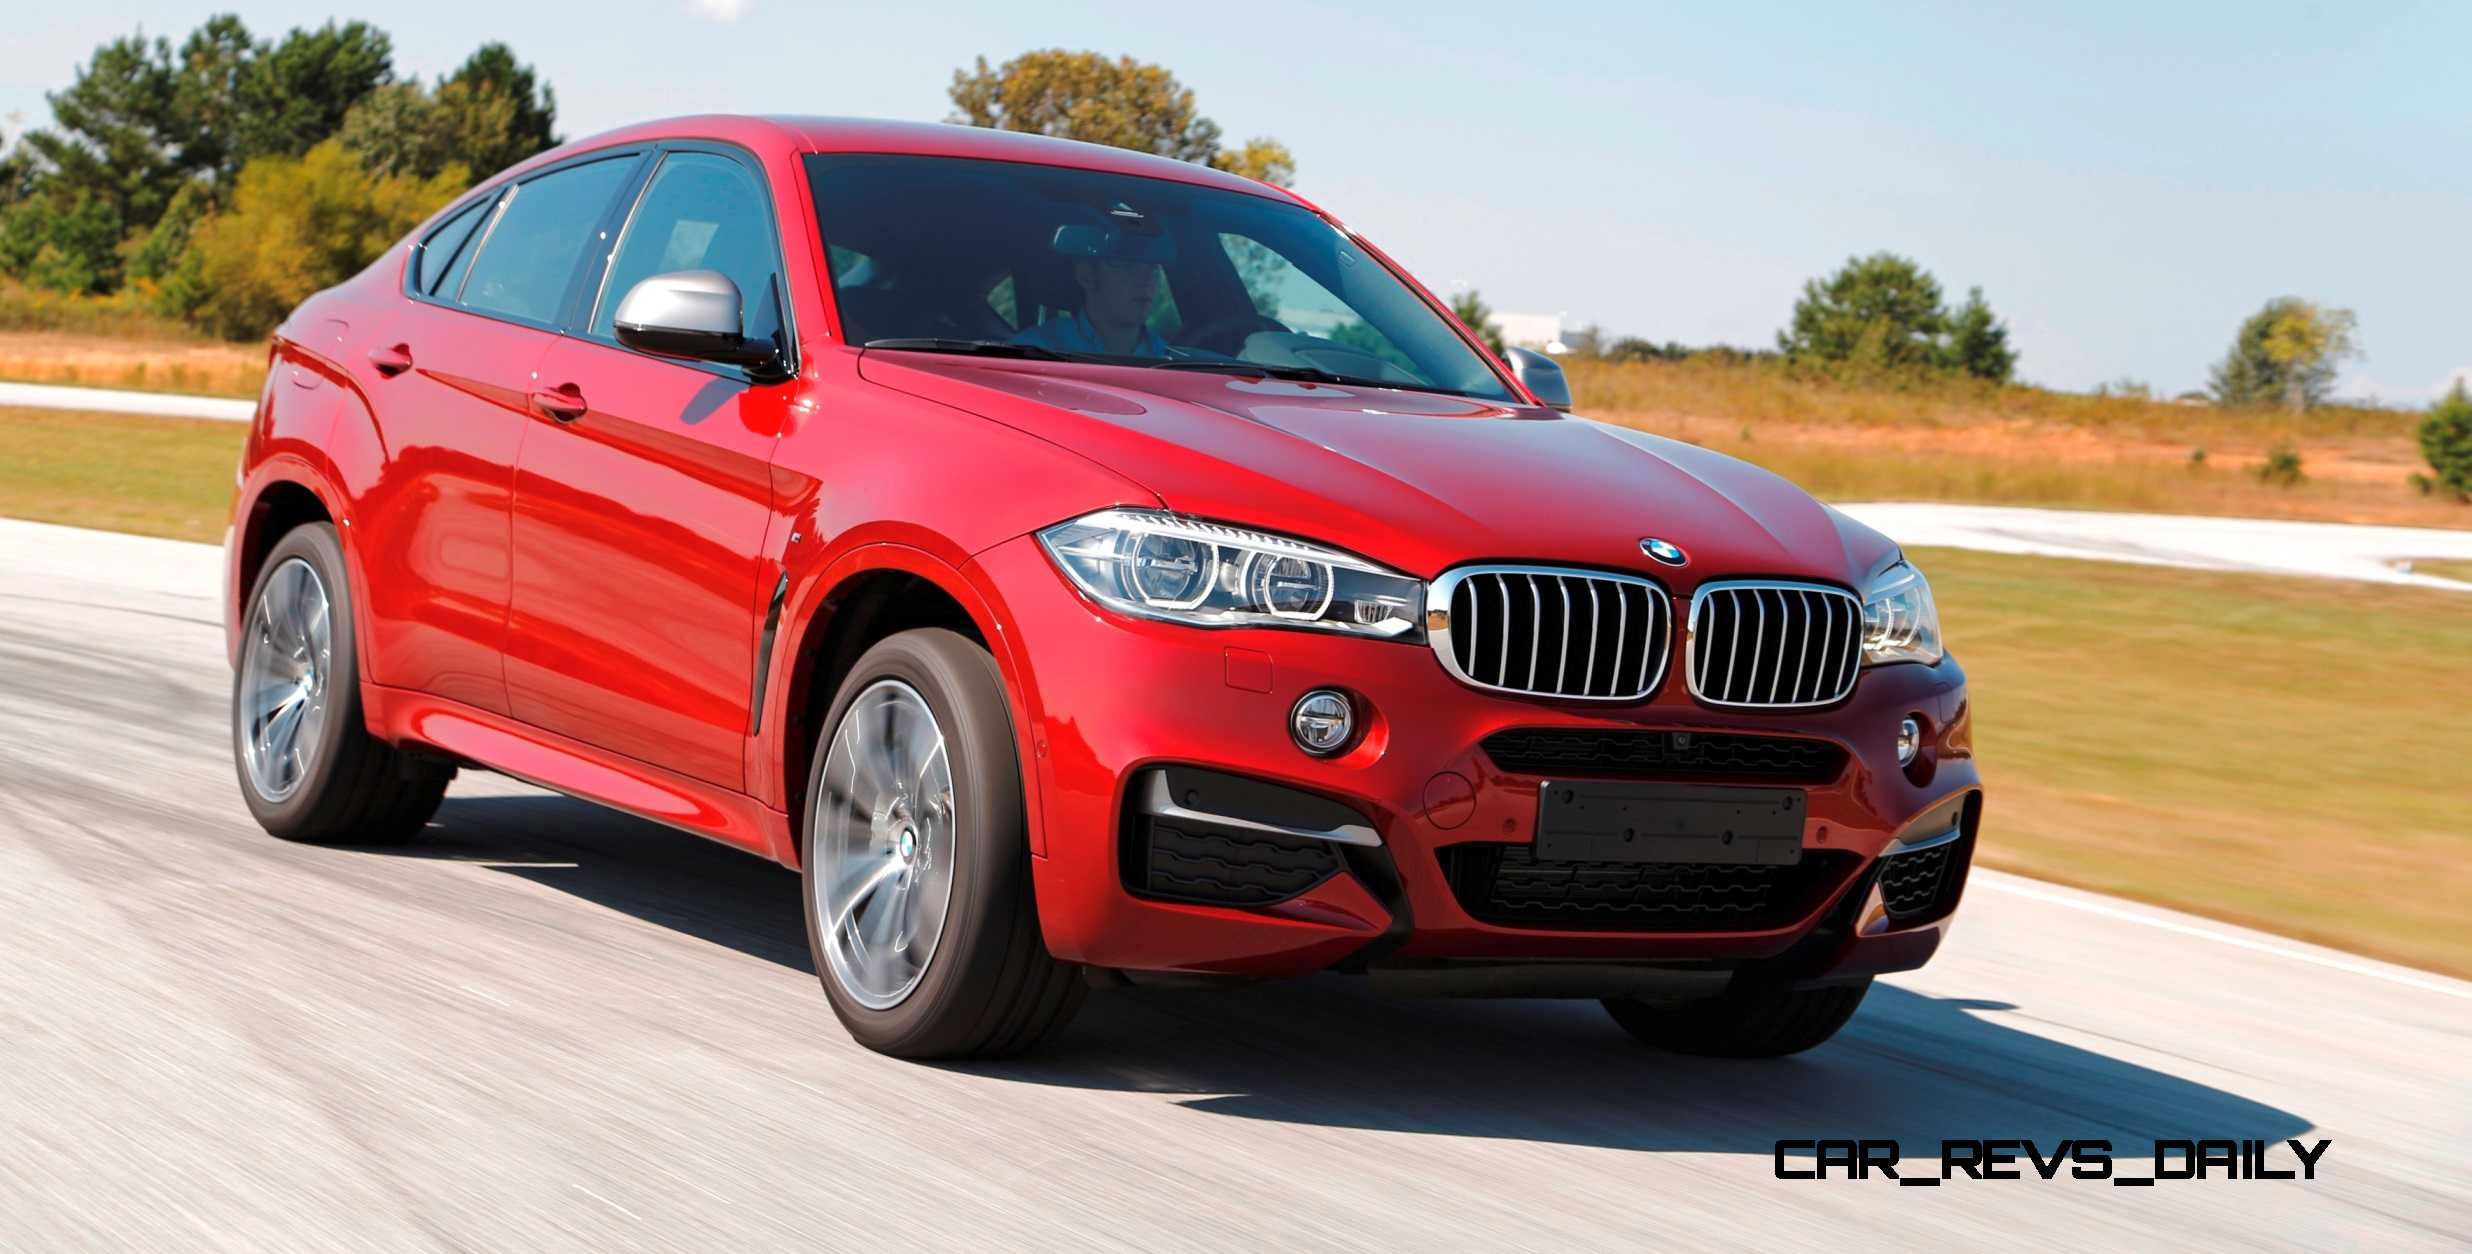 photos reviews features vehicle bmw suv photo price activity sports